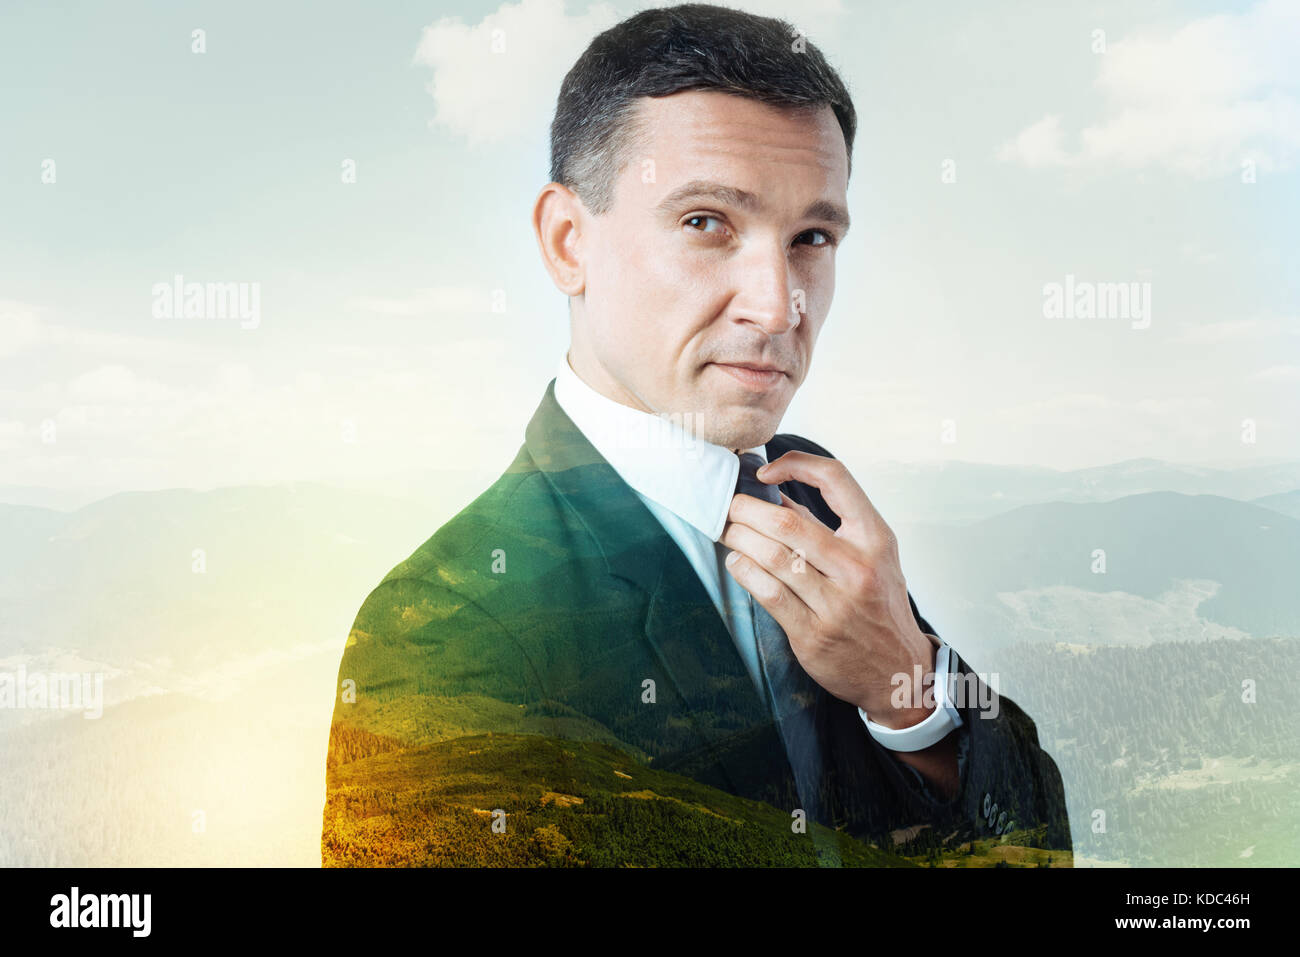 Handsome young man fixing his stylish tie - Stock Image